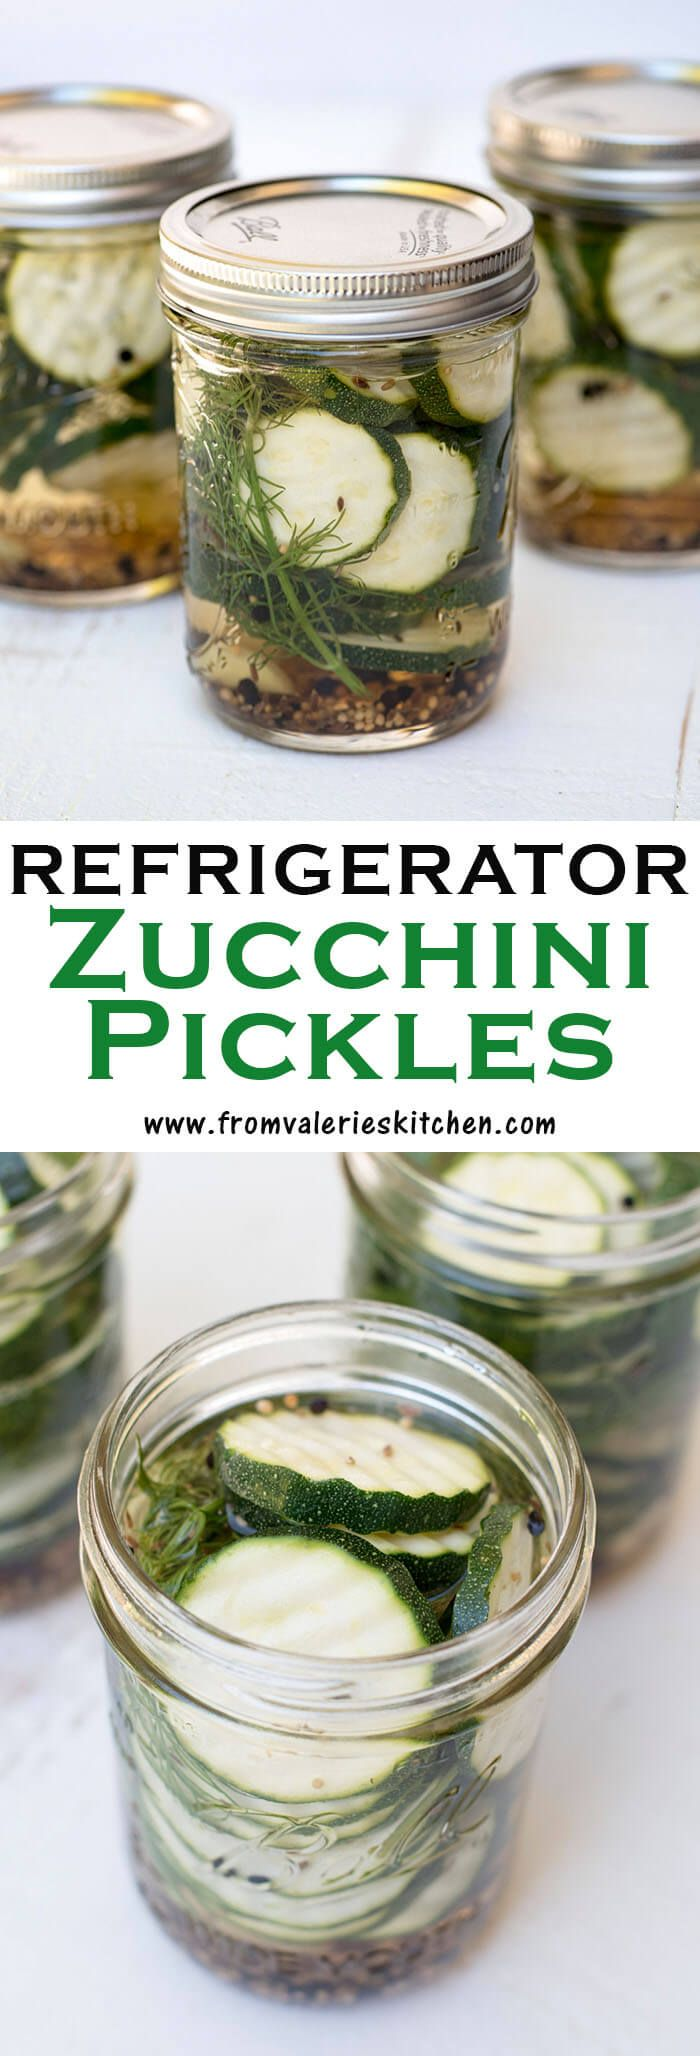 These Refrigerator Zucchini Pickles are a fantastic way to use up that ever abundant late-summer zucchini. Fun and easy to make and so tasty!